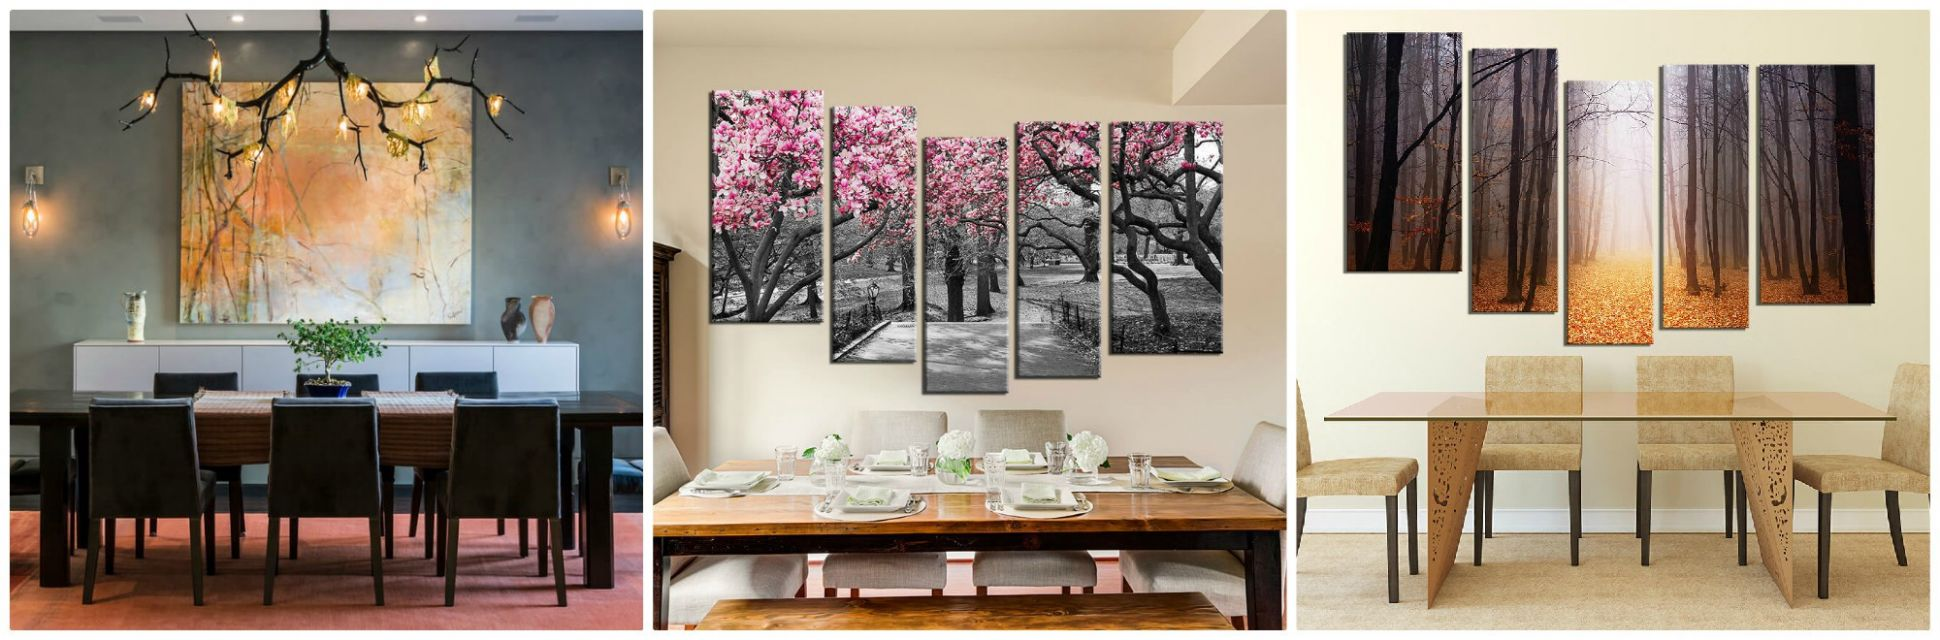 8 Beautiful Tree Wall Art Ideas To Decor Dining Room Interior - dining room artwork ideas